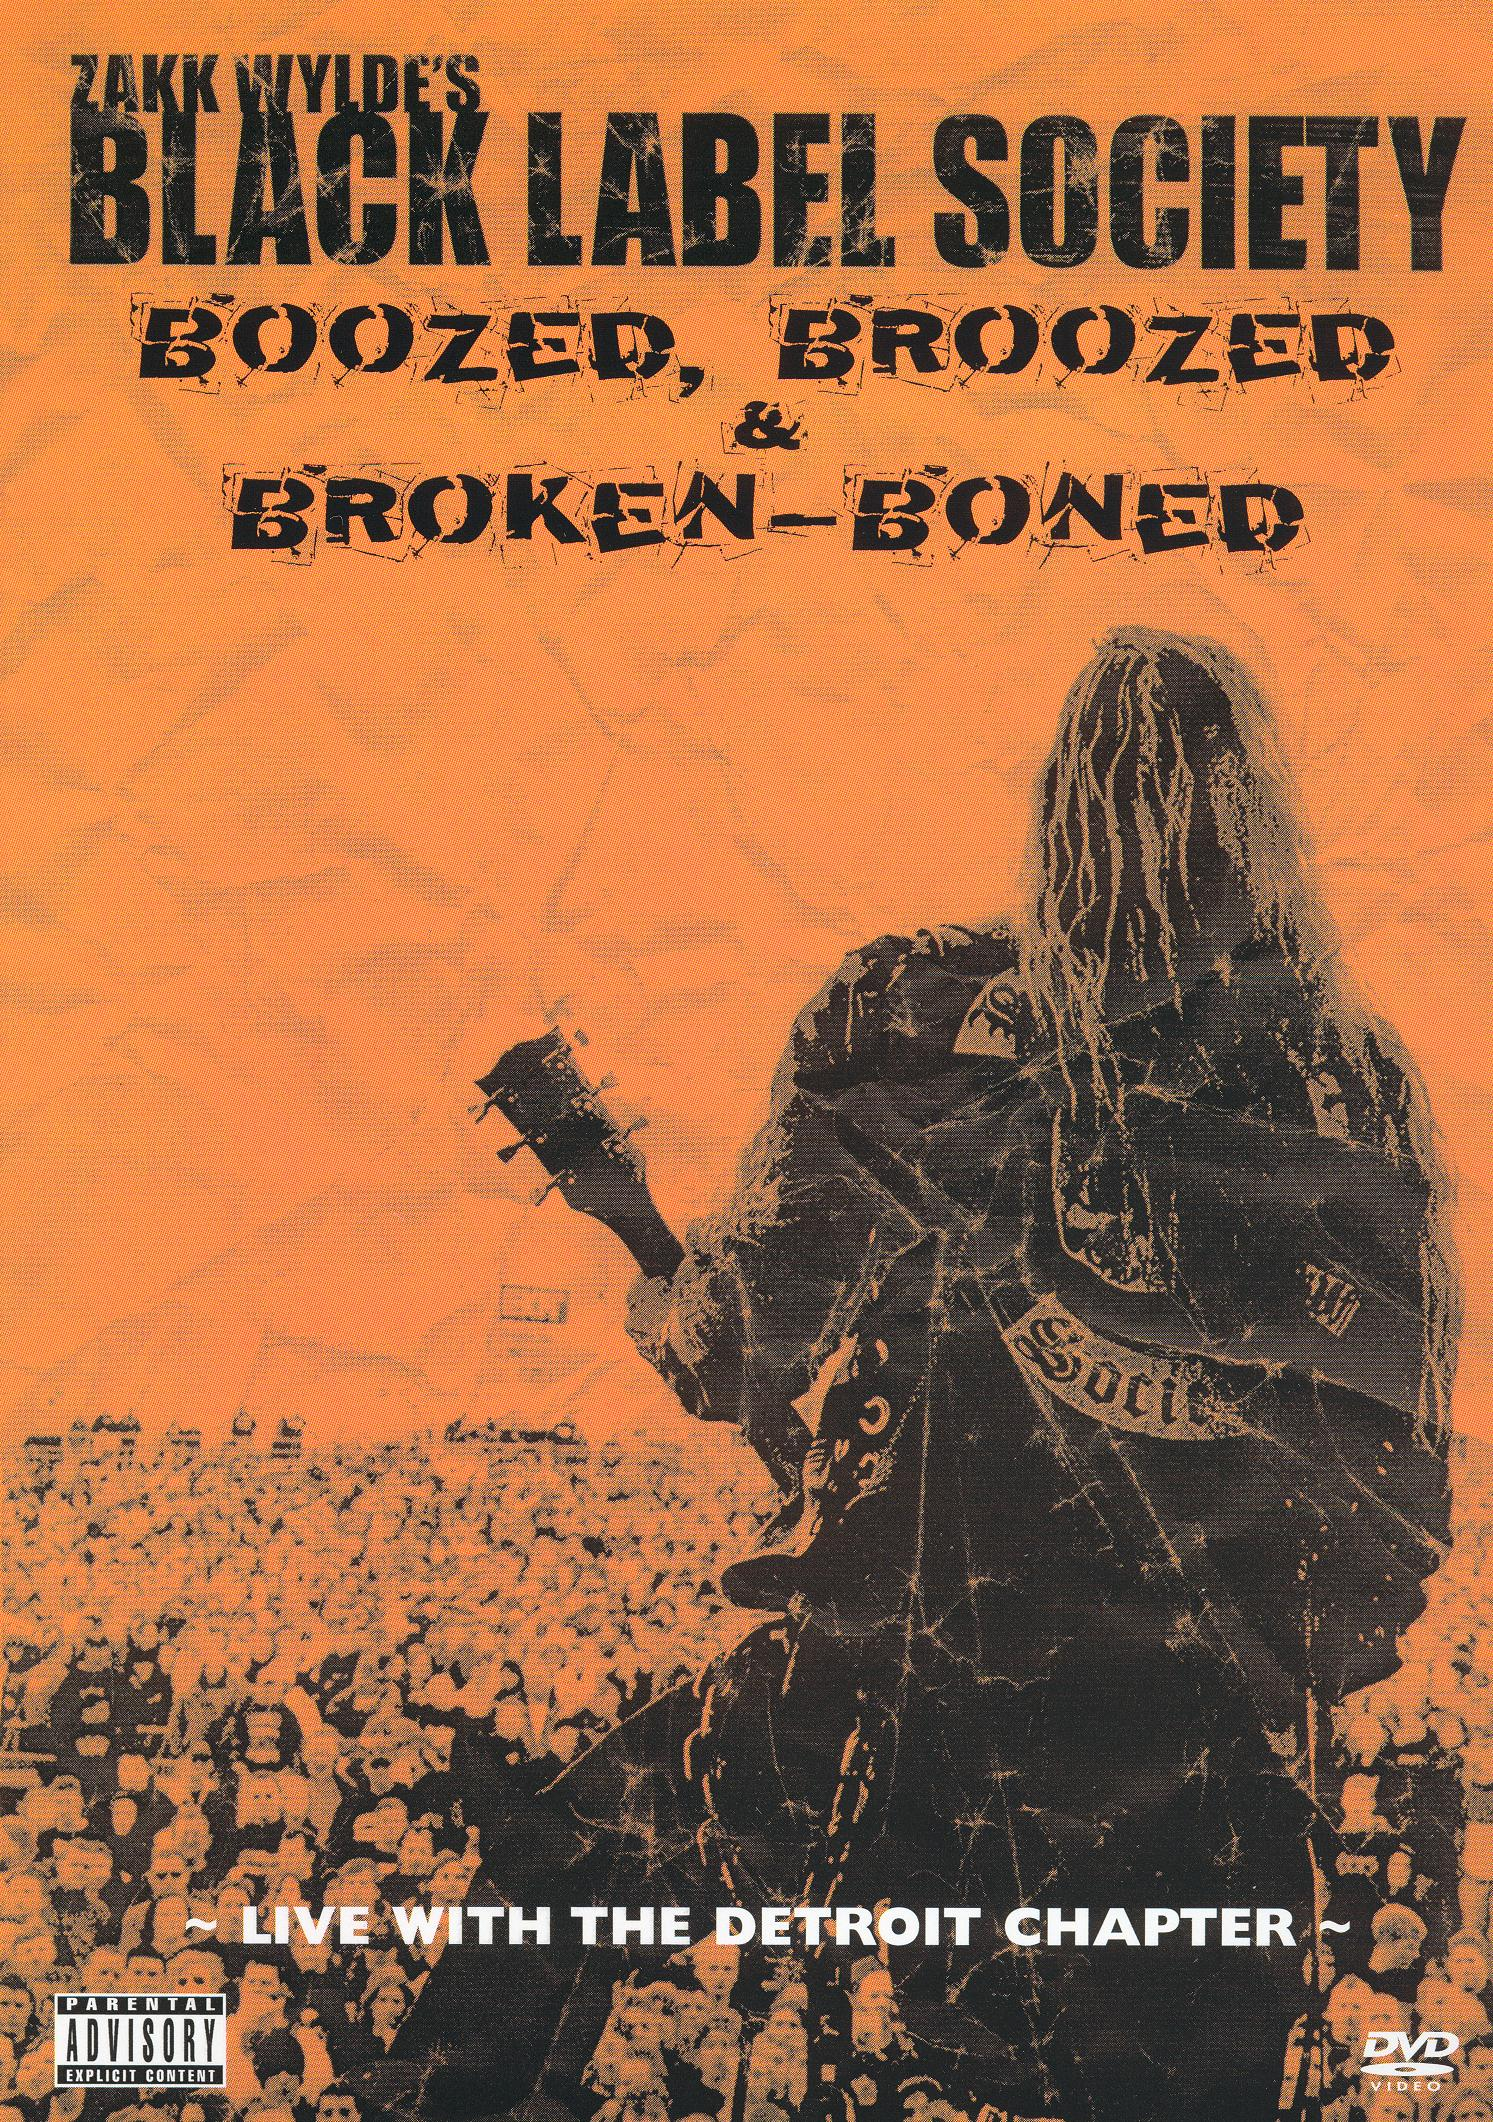 Zakk Wylde's Black Label Society: Boozed, Broozed & Broken-Boned